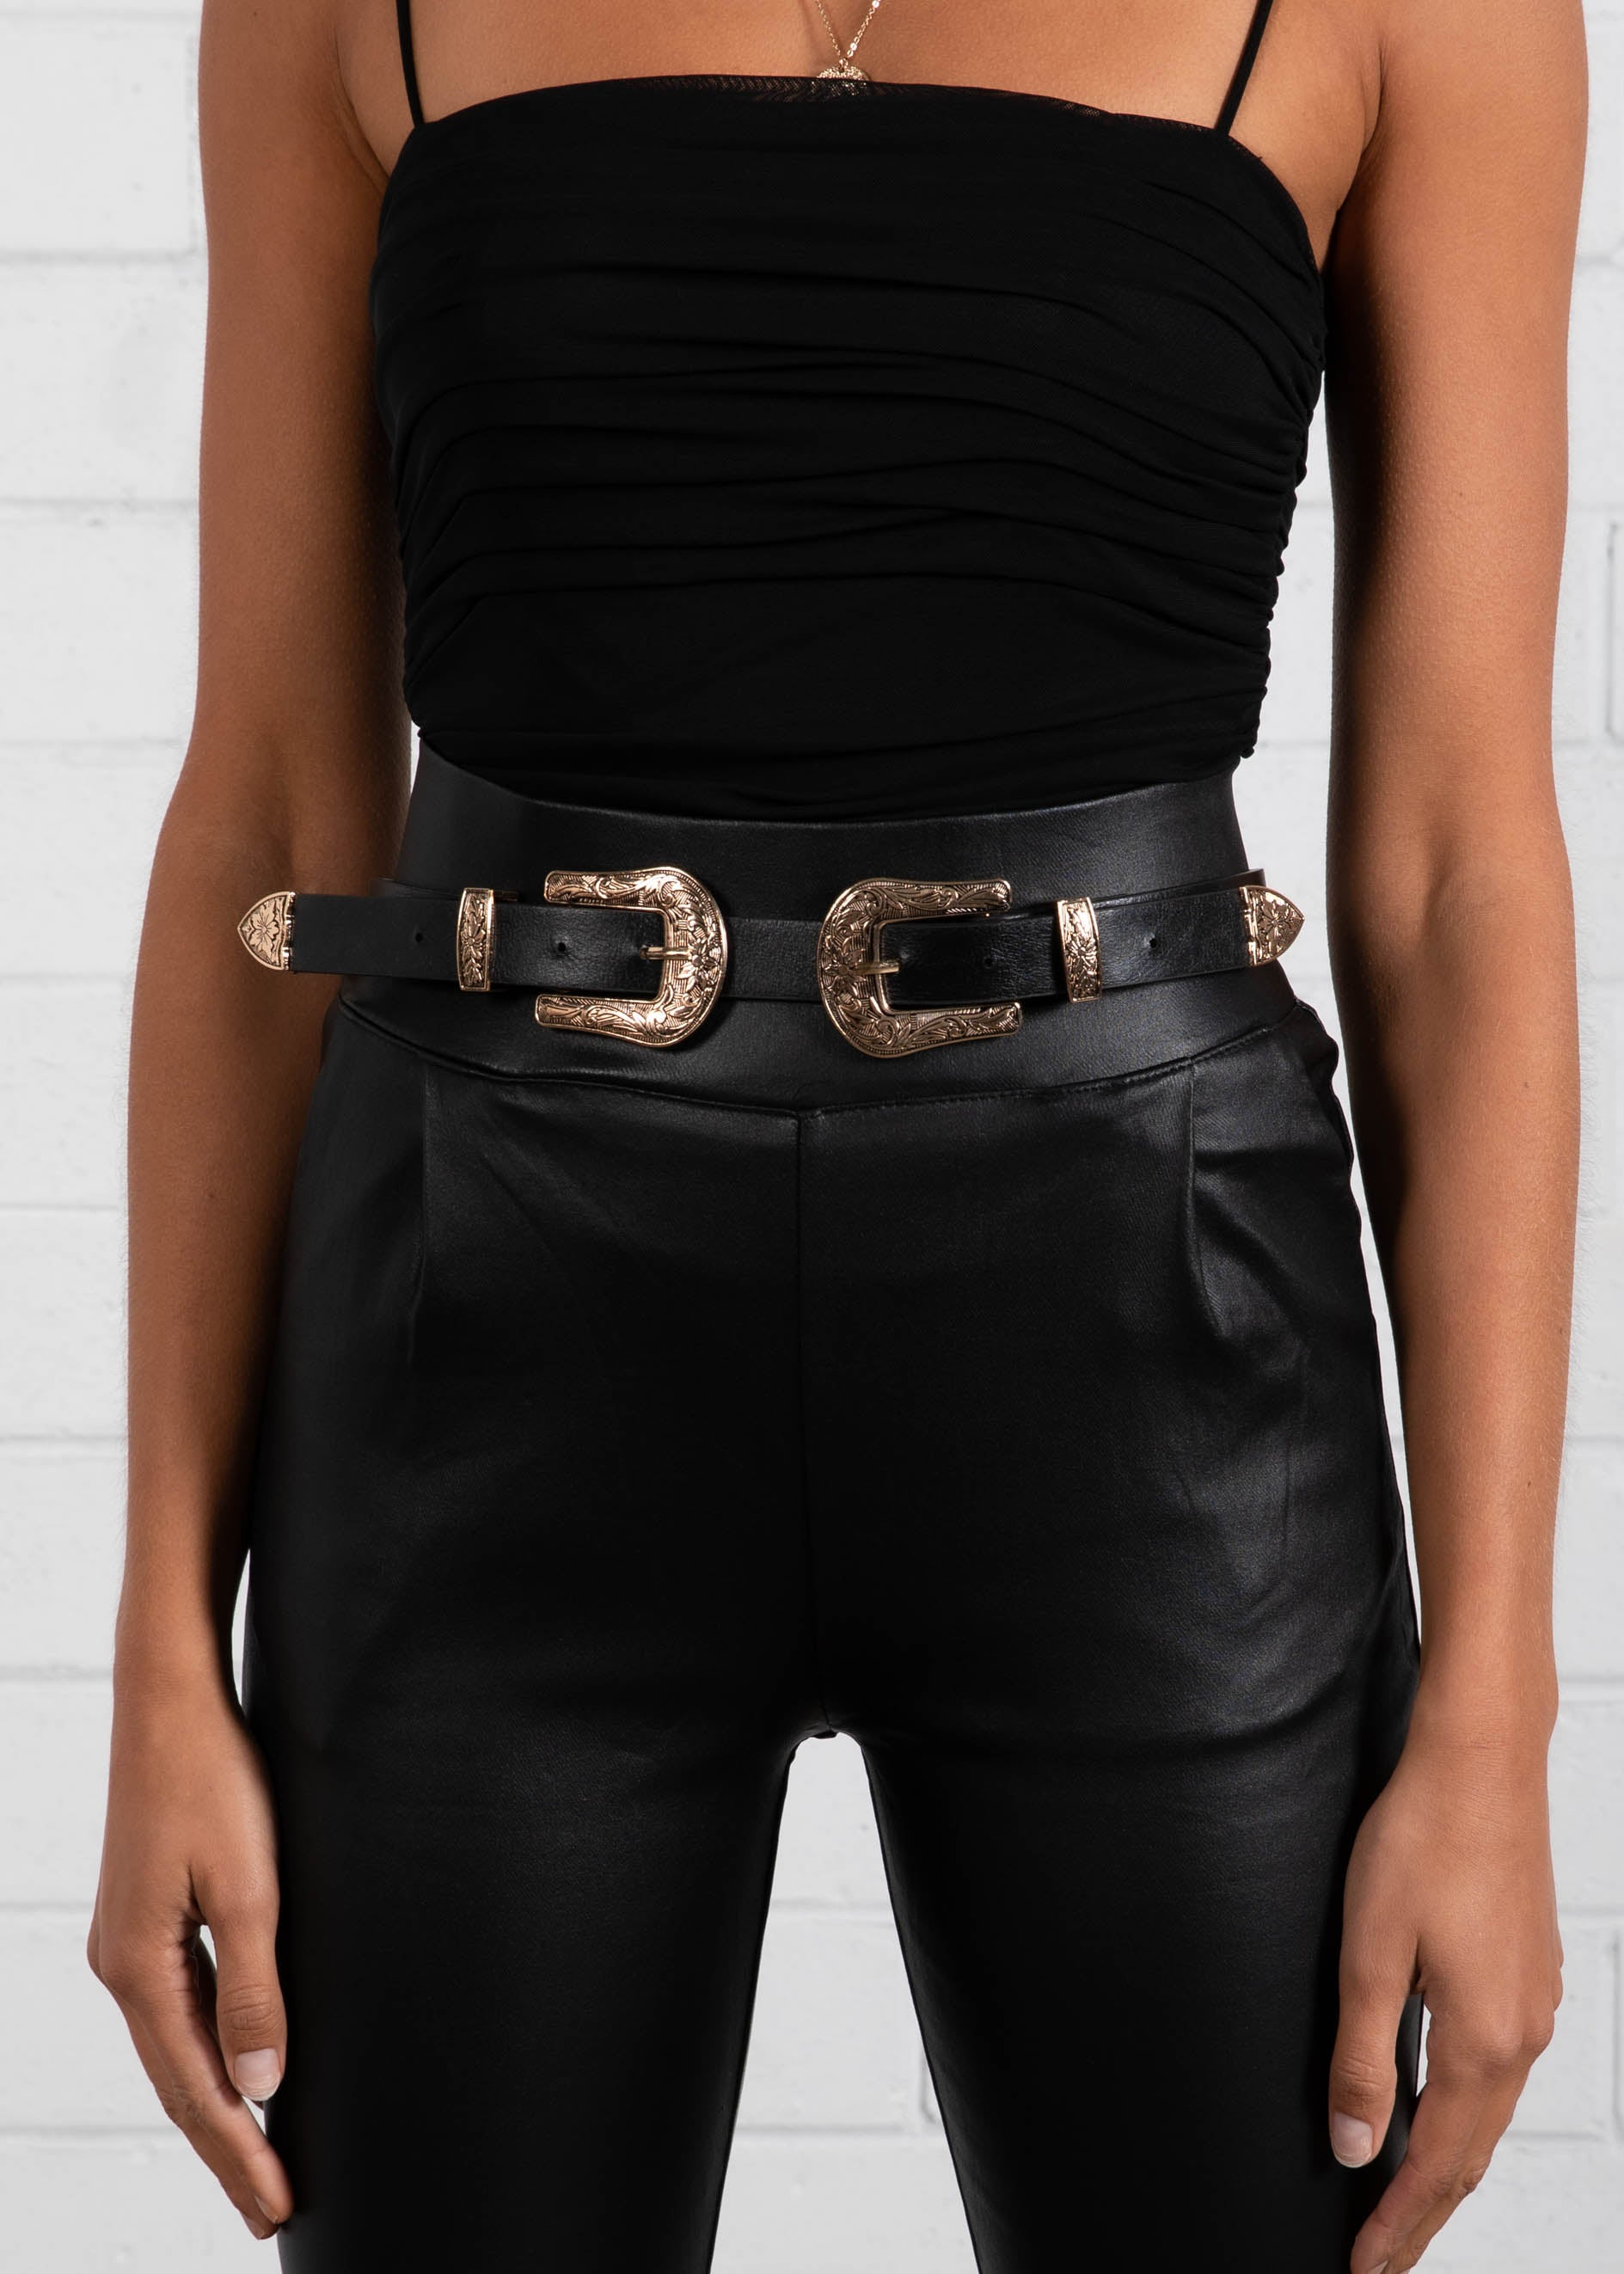 Lucid Thoughts Belt - Black/Gold